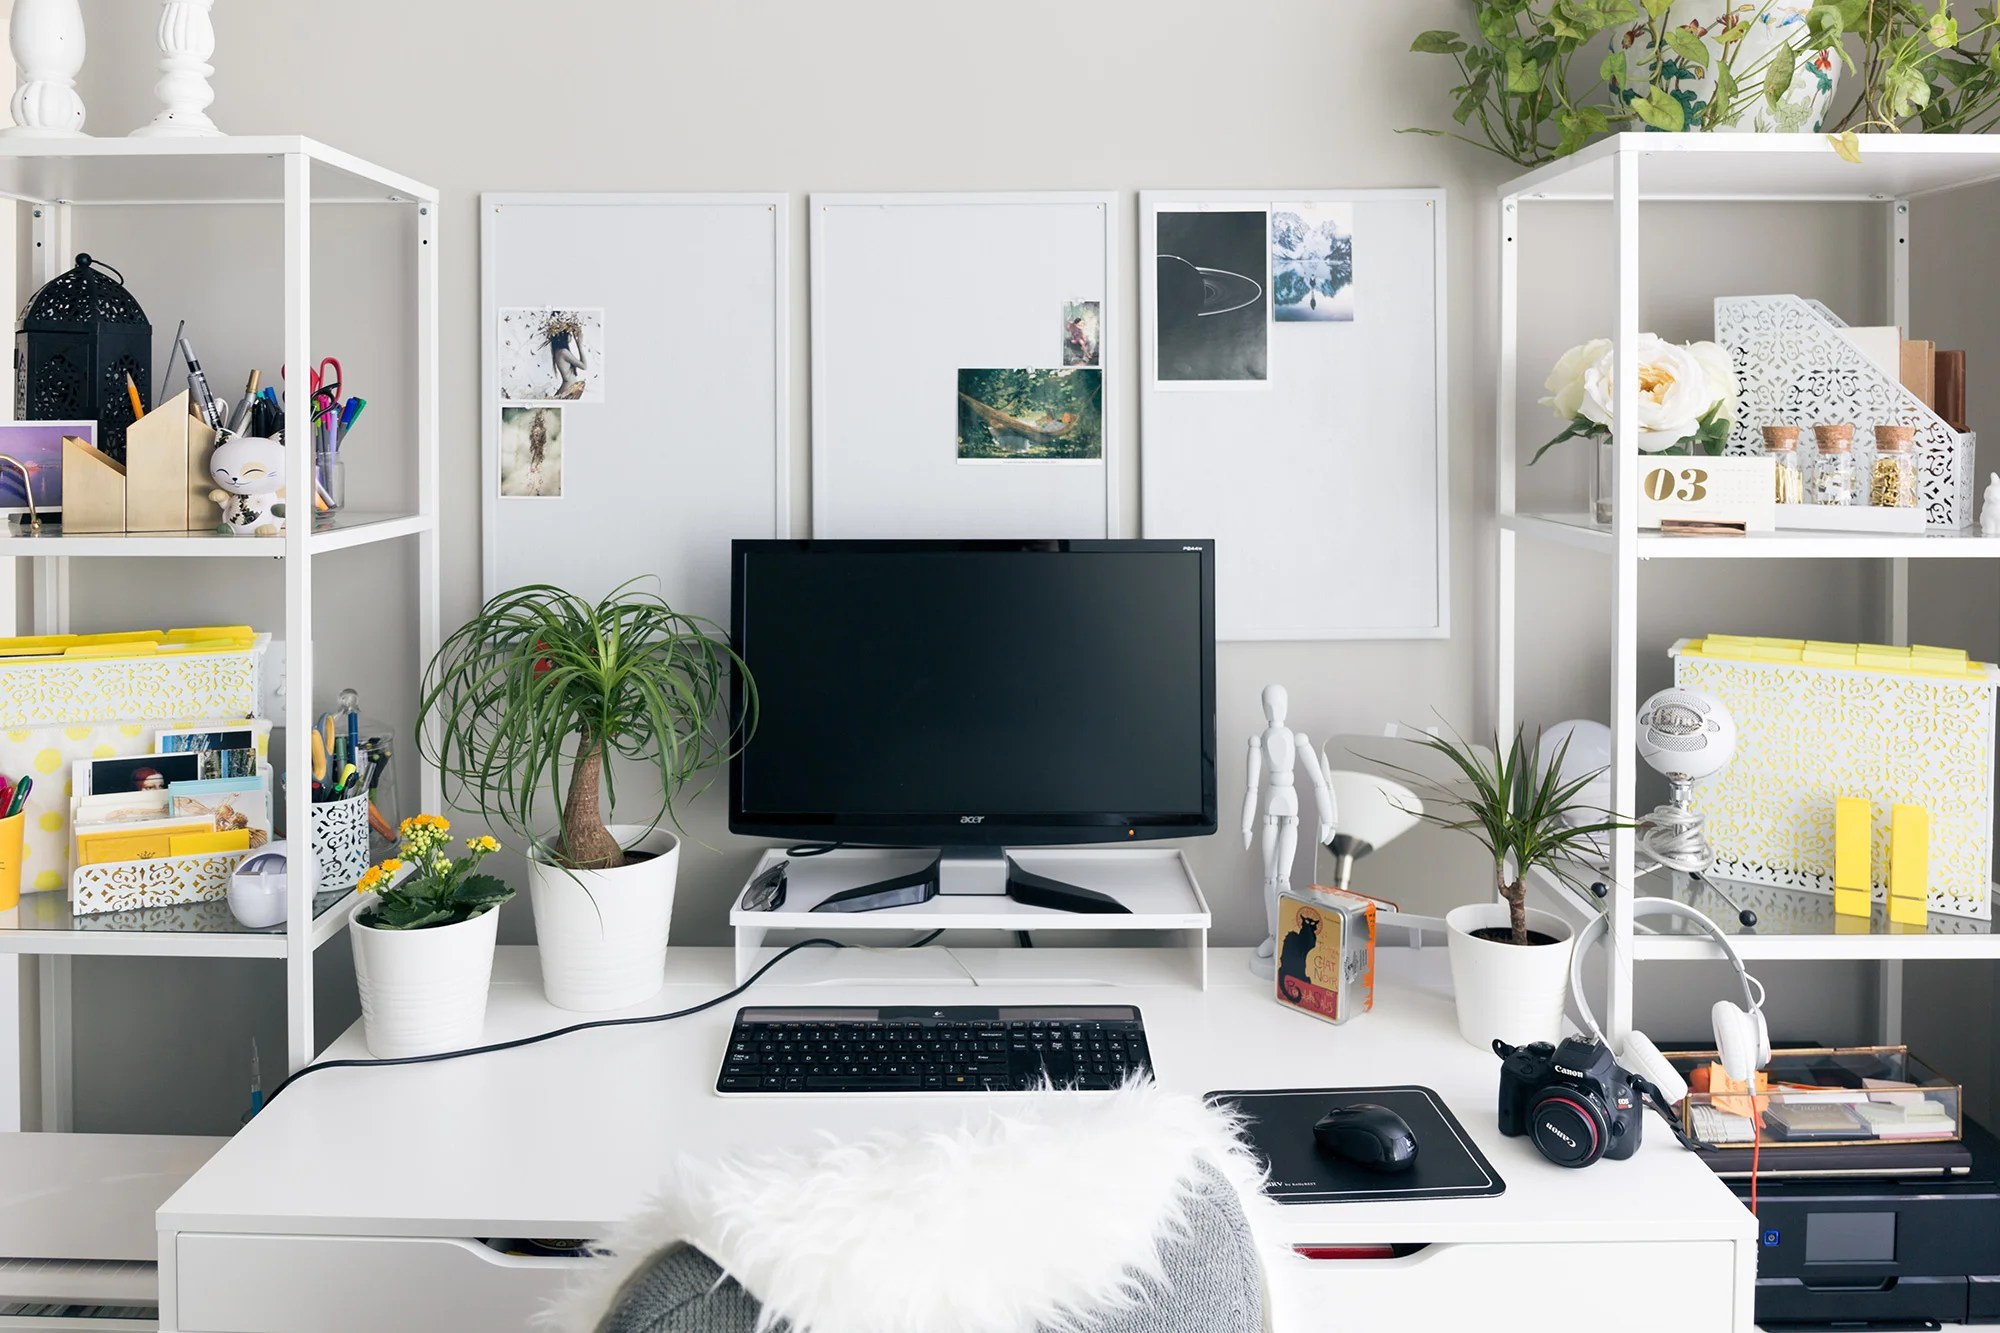 Best Desk Organizer Desk Accessories That Banish Clutter